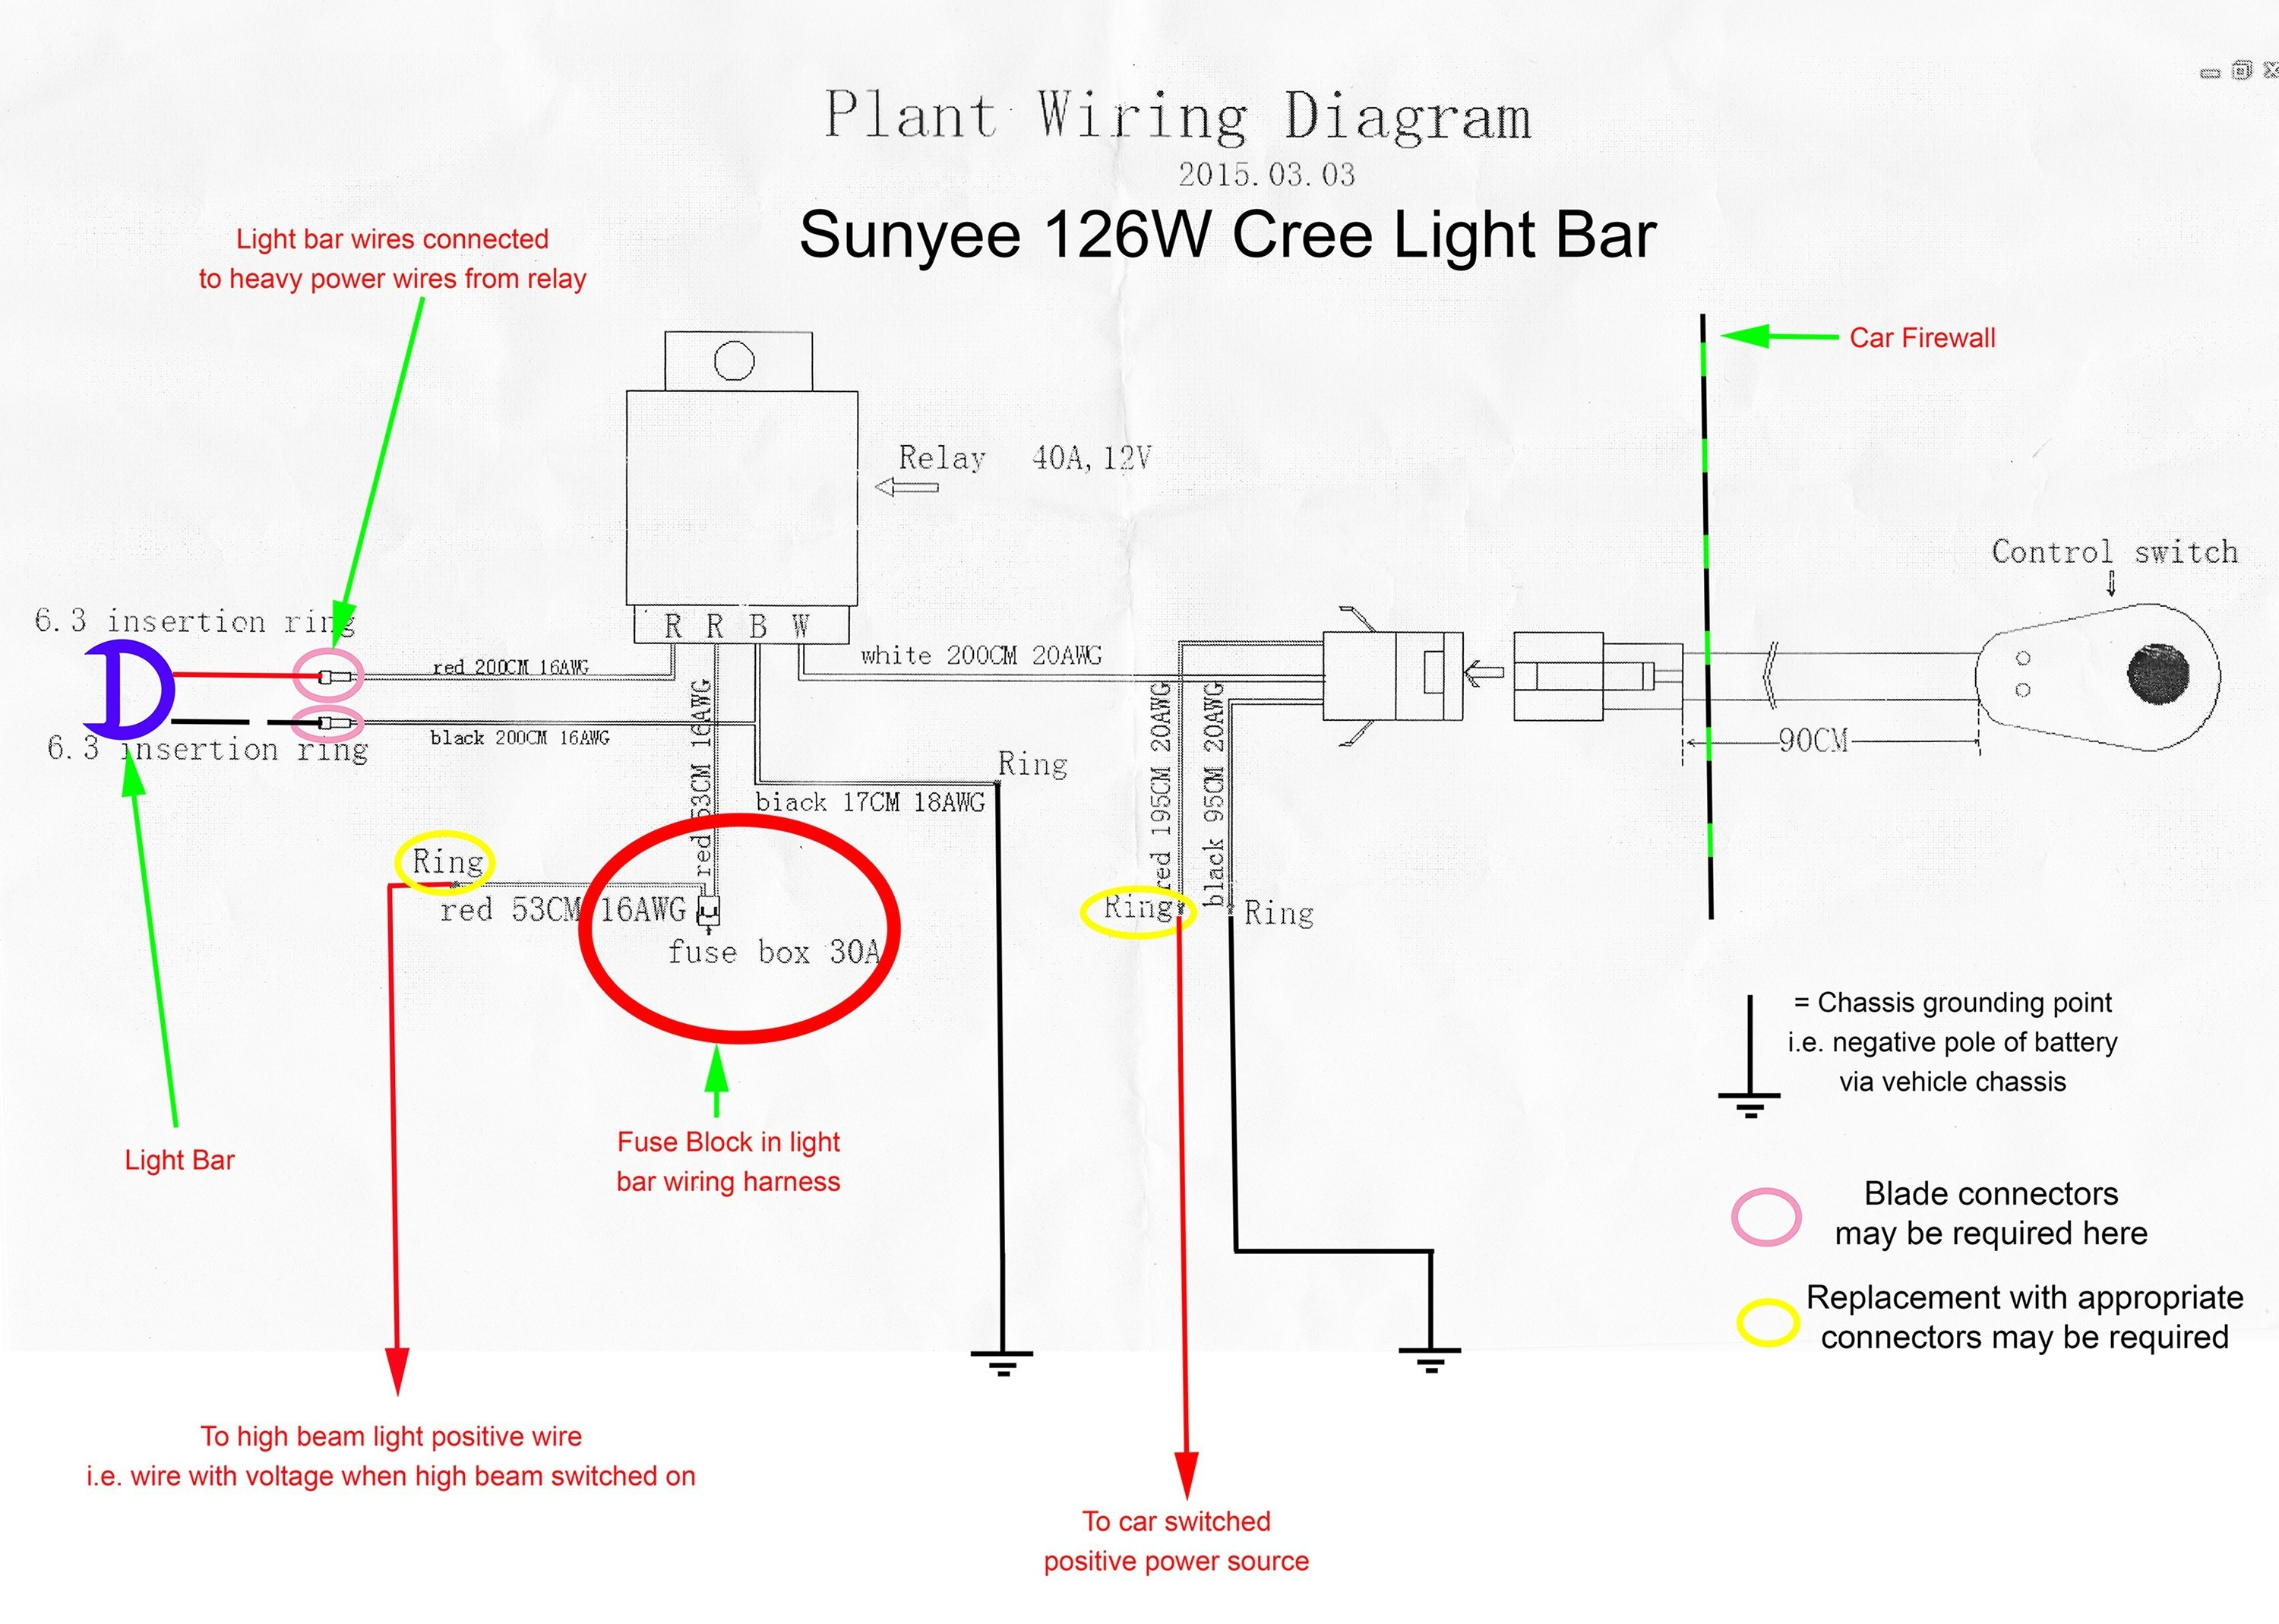 tail light diagram wiring diagram trailer board best trailer lights wiring diagram best of tail light diagram lark camper wiring diagram great installation of wiring diagram \u2022